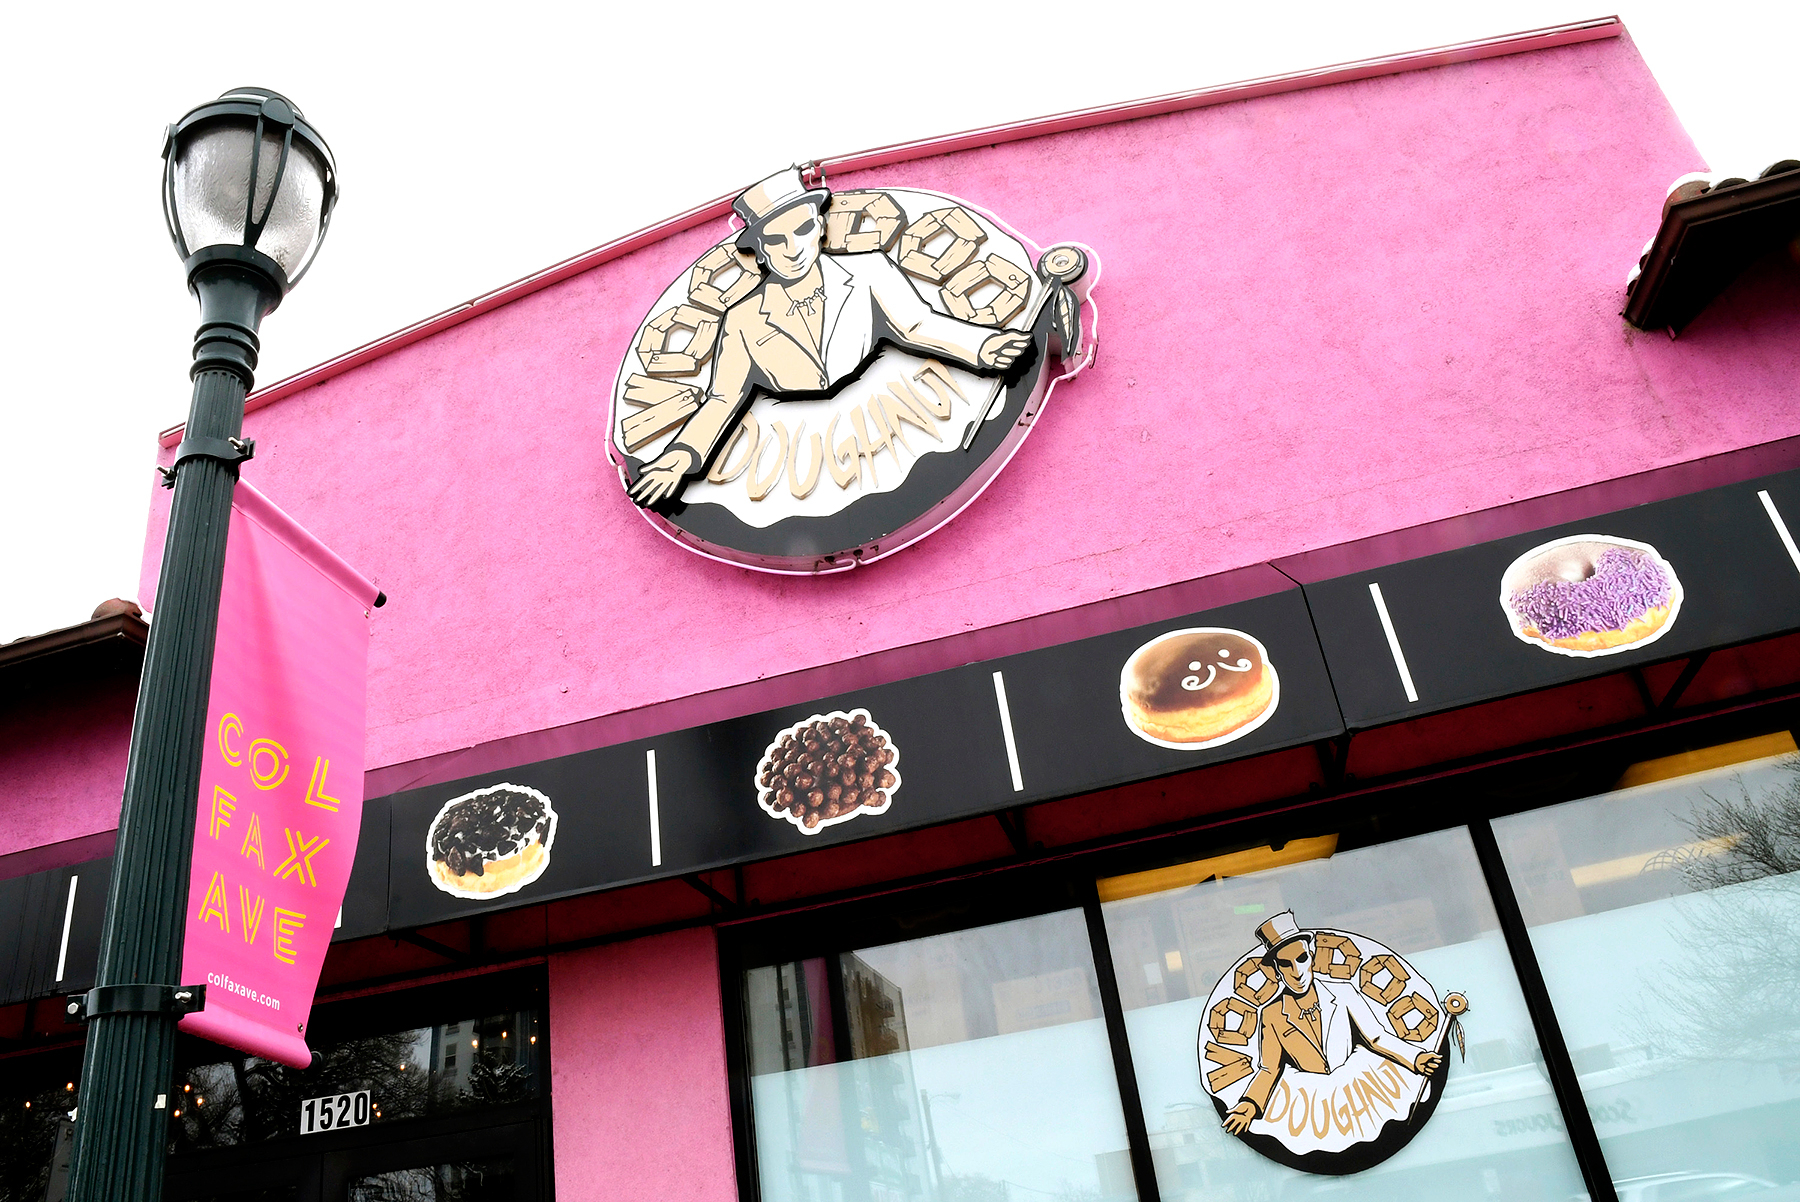 The company sign hangs over the windows of the storefront of Voodoo Doughnuts on East Colfax Avenue in Denver on Tuesday, April 4, 2017.